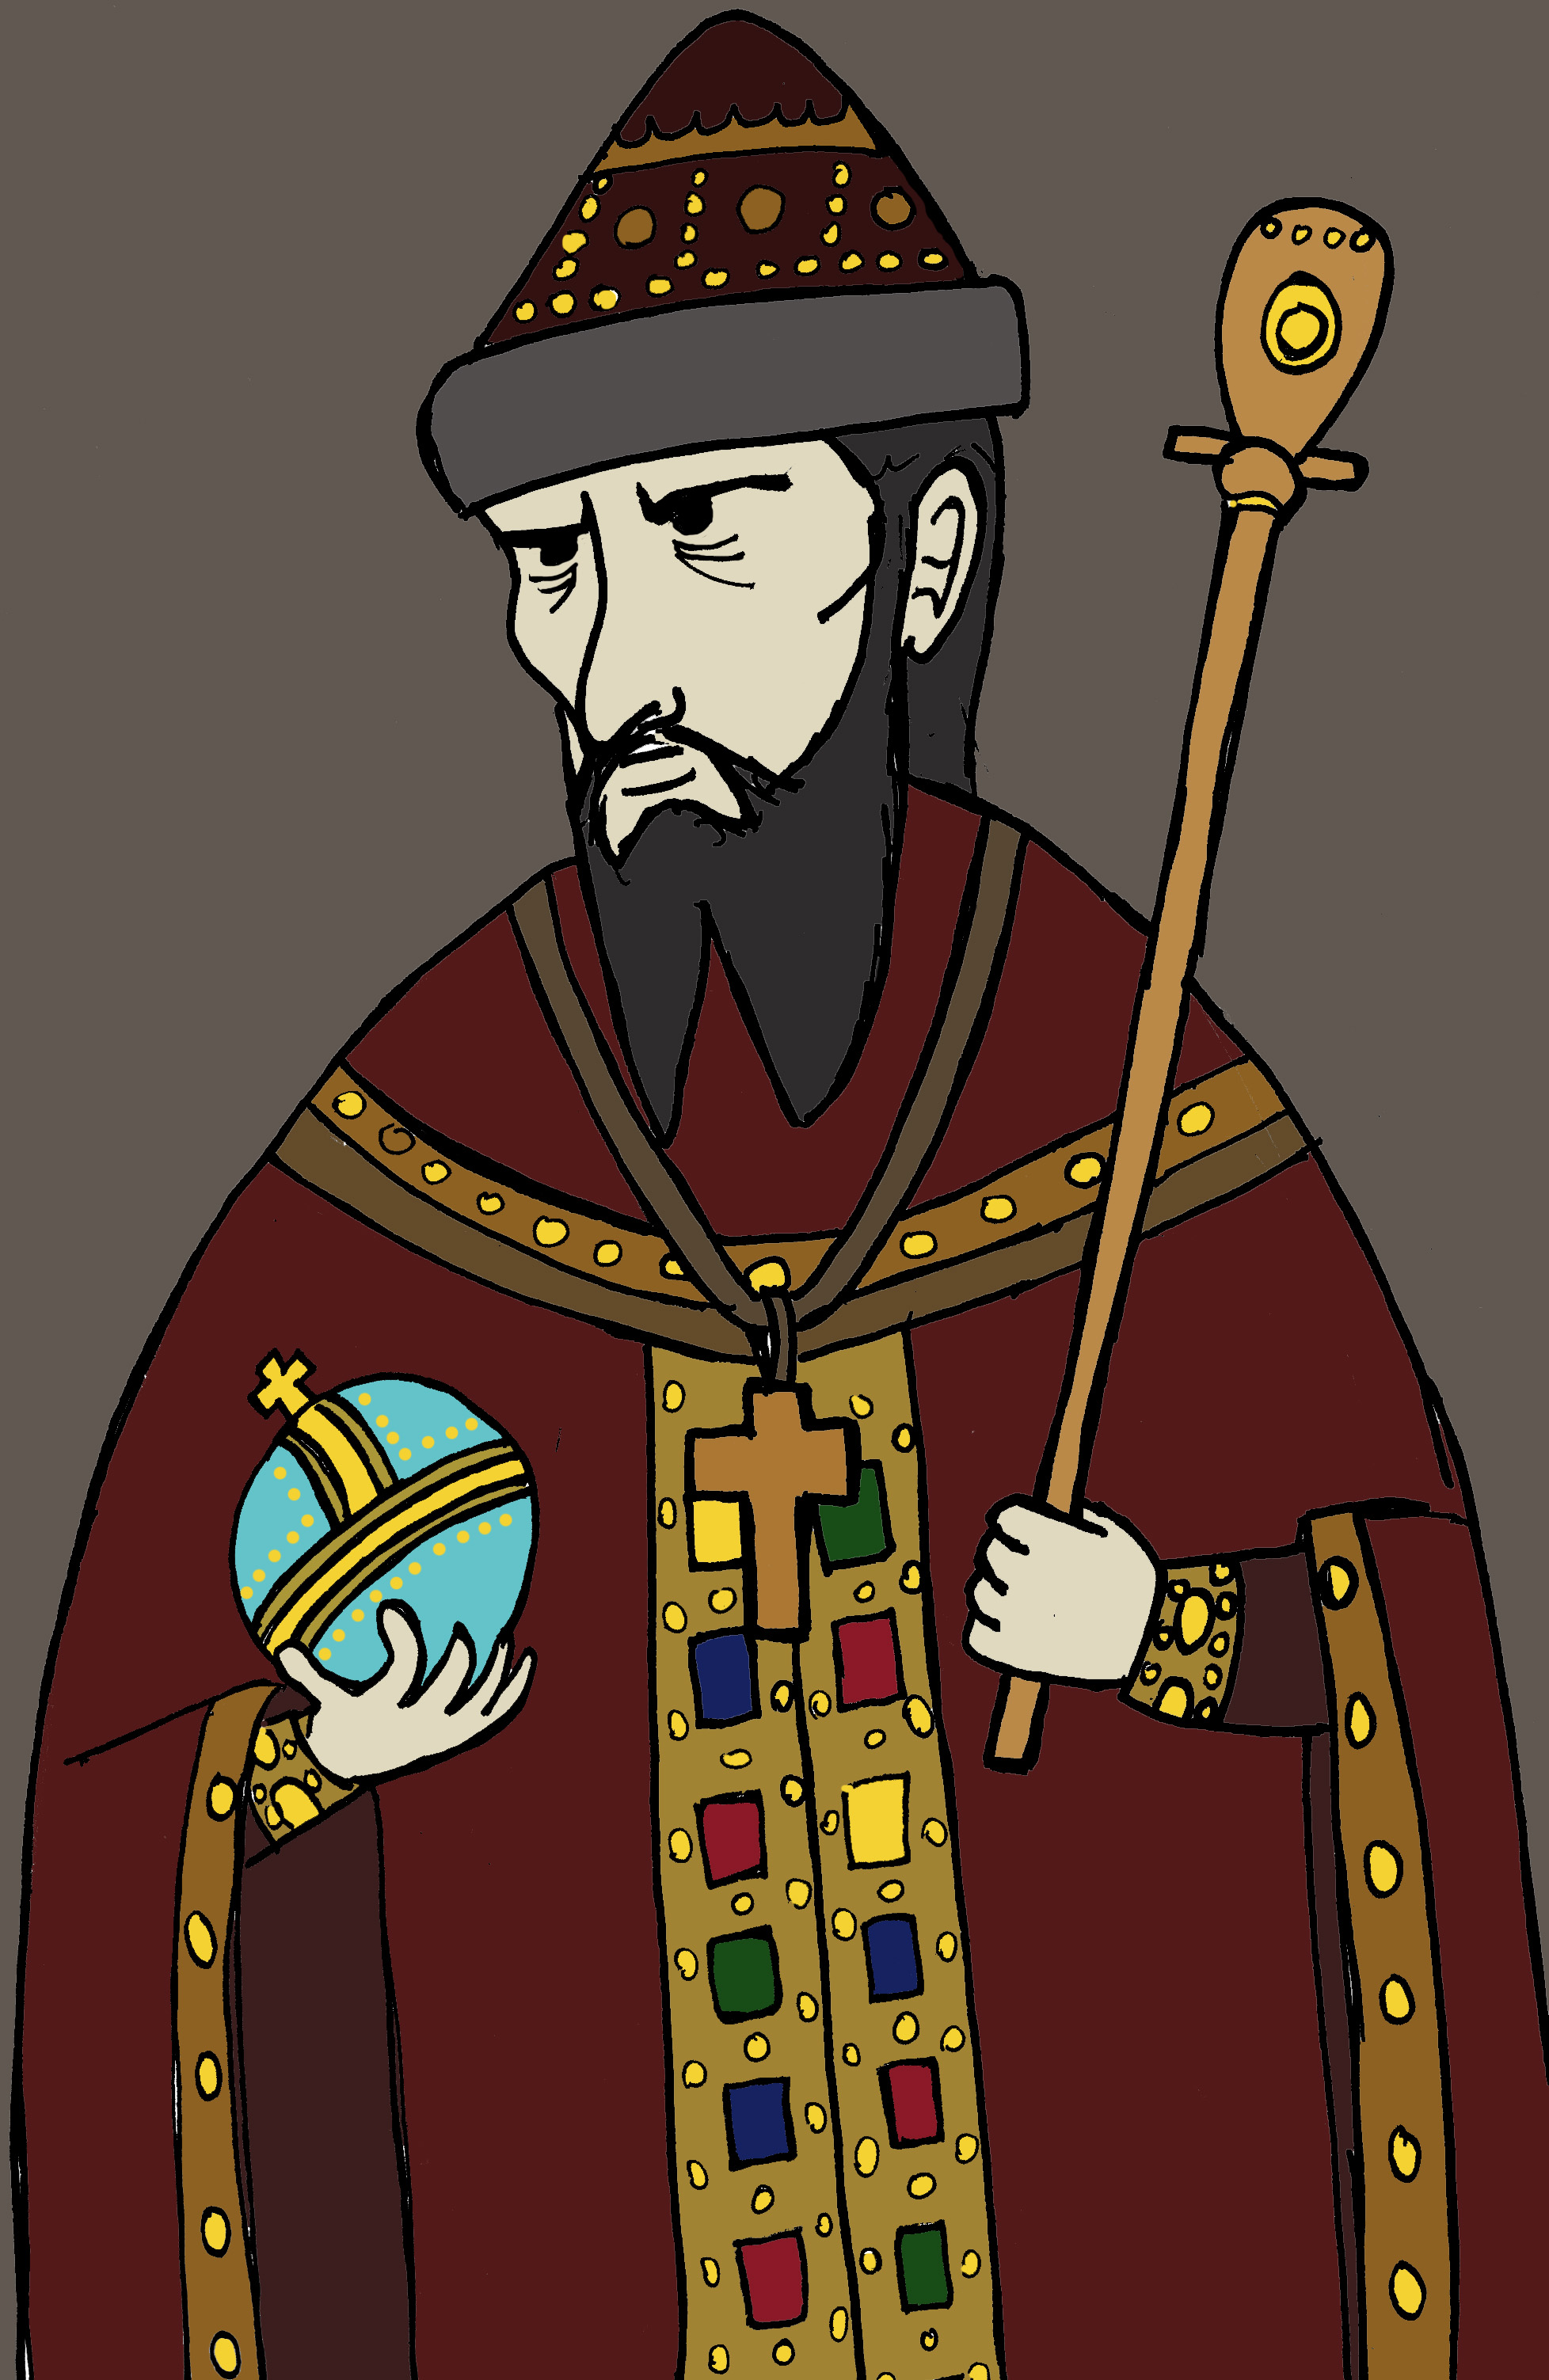 ivan the terrible Two most interesting of ivan the terrible facts are that he killed his own son and beat his pregnant daughter-in-law that lead of miscarriage.